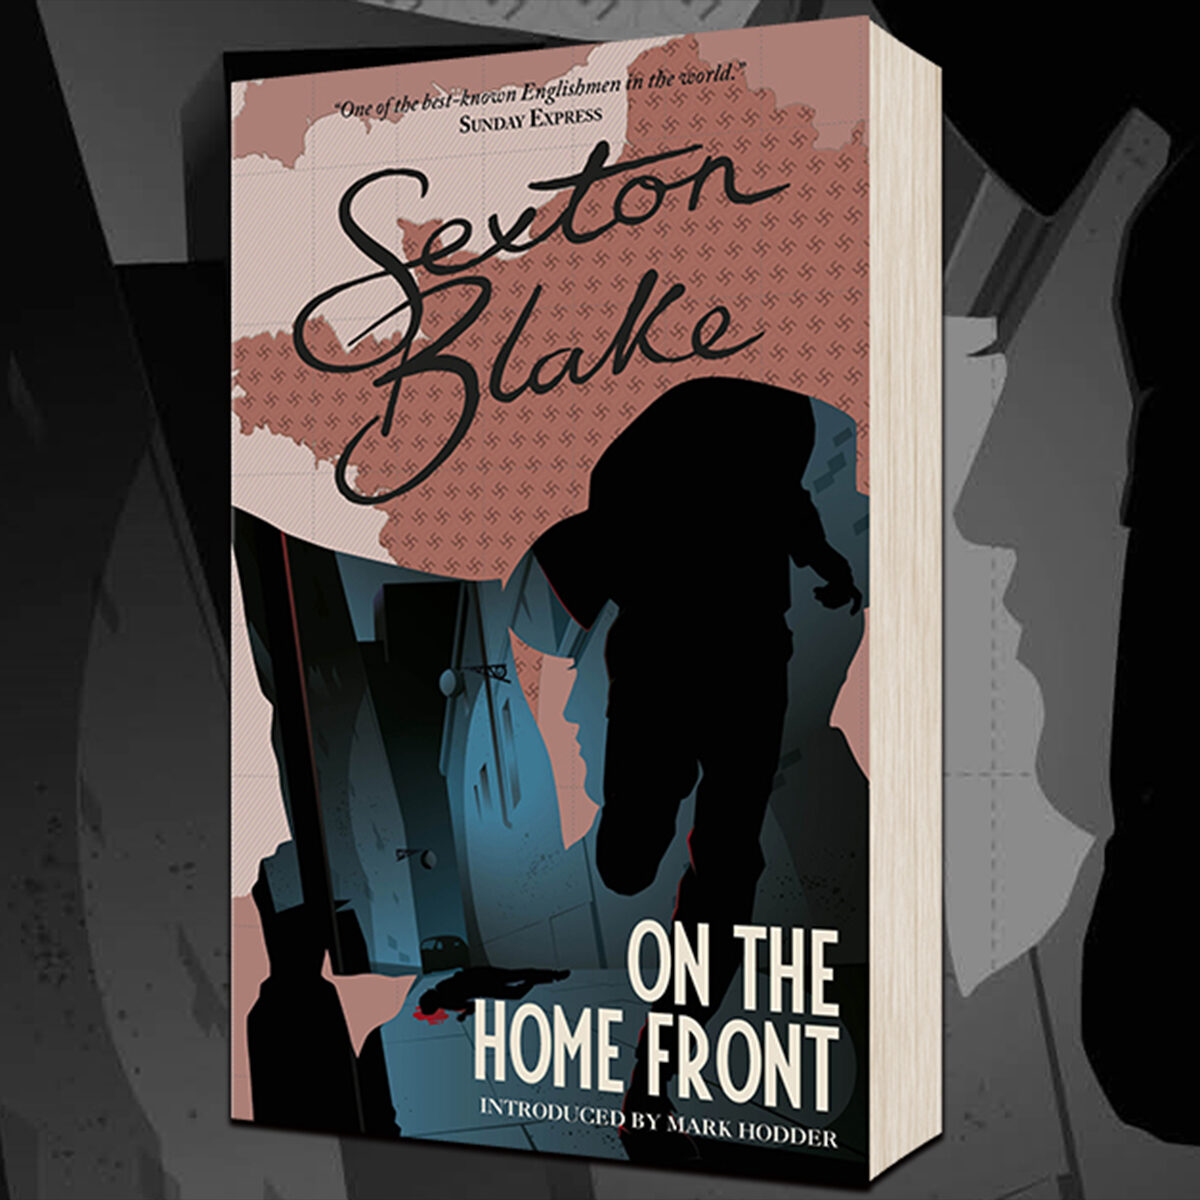 OUT NOW: Sexton Blake On The Home Front!